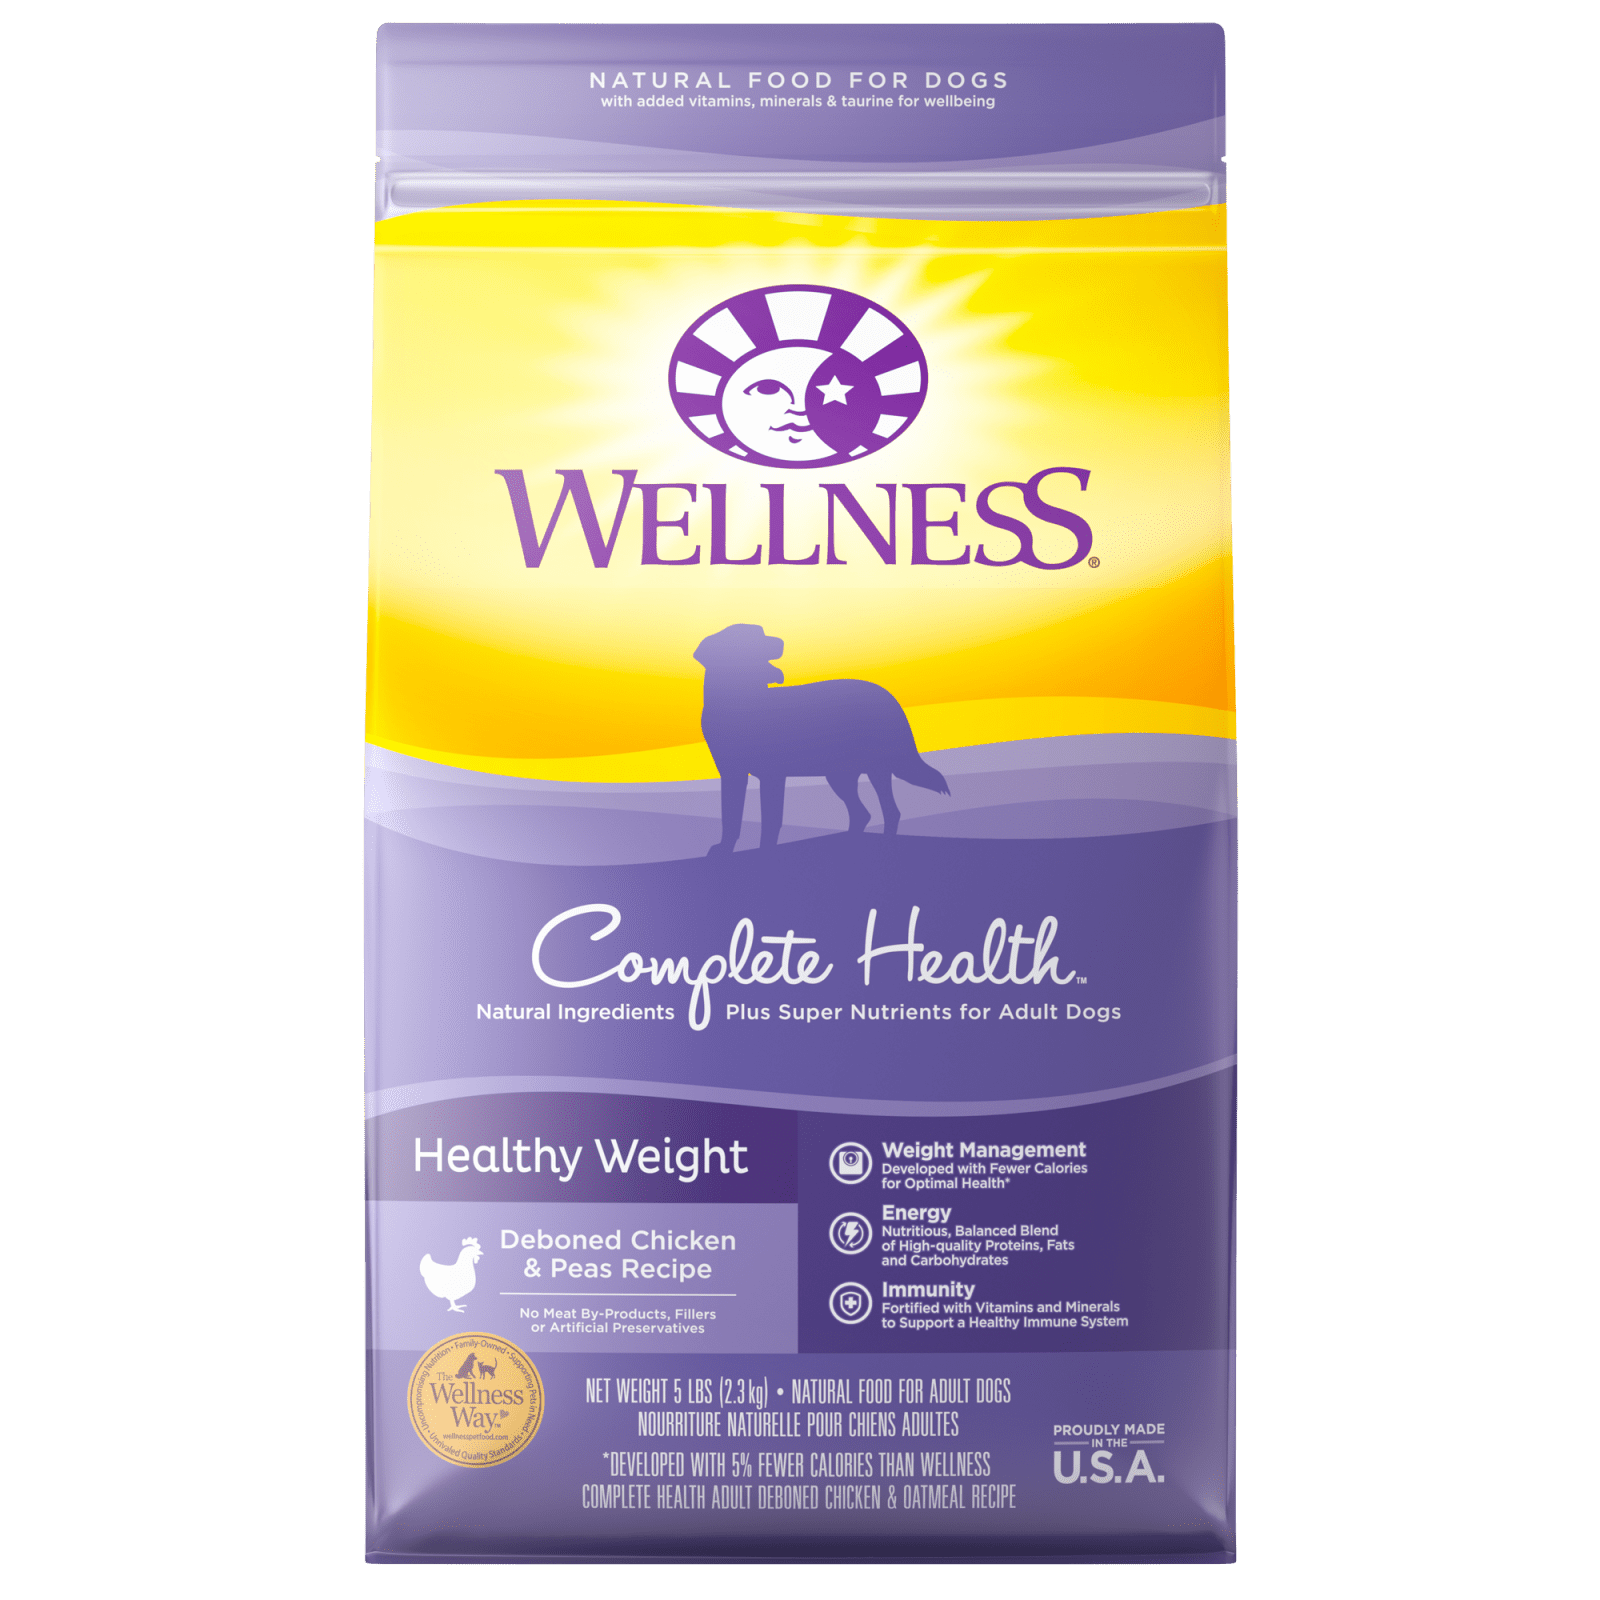 Dog Food: Wellness Complete Food Company Review